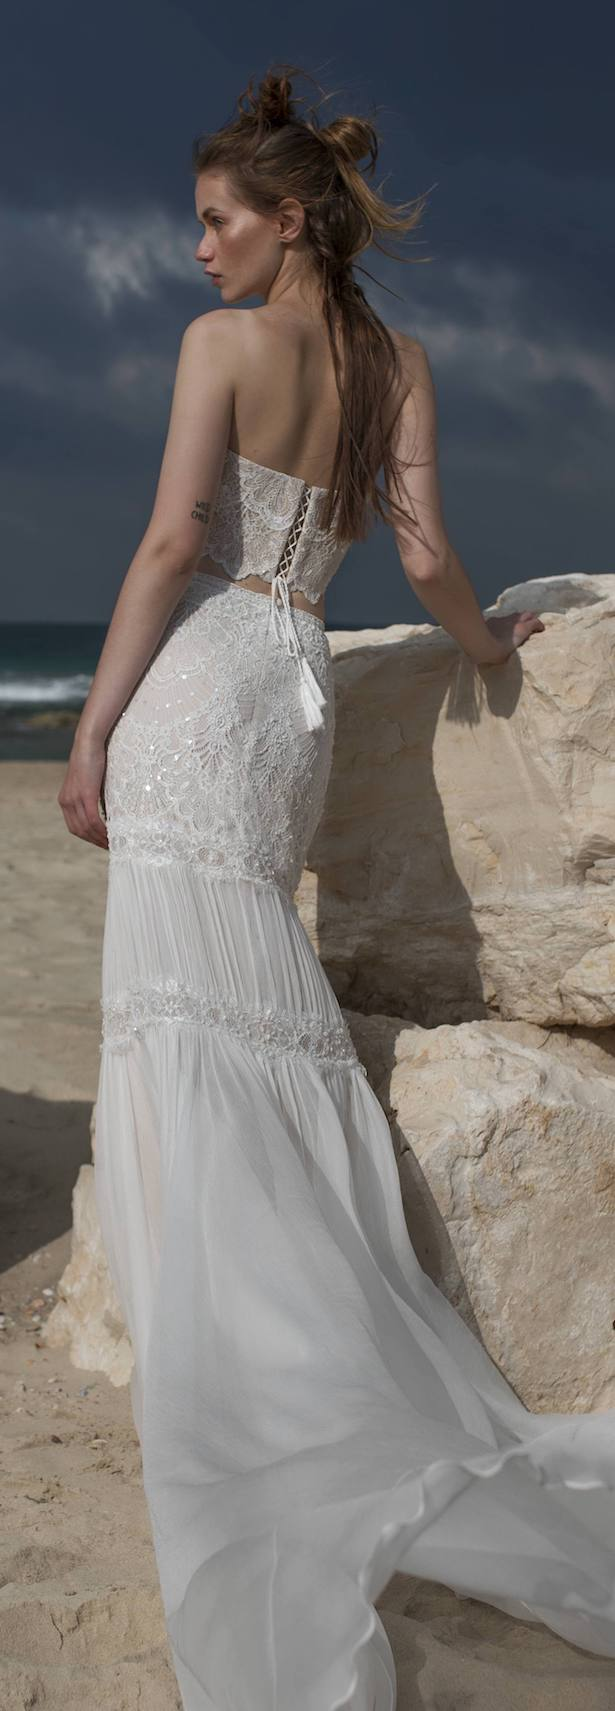 Wedding Dress By Limor Rosen Bridal Couture 2018 Free